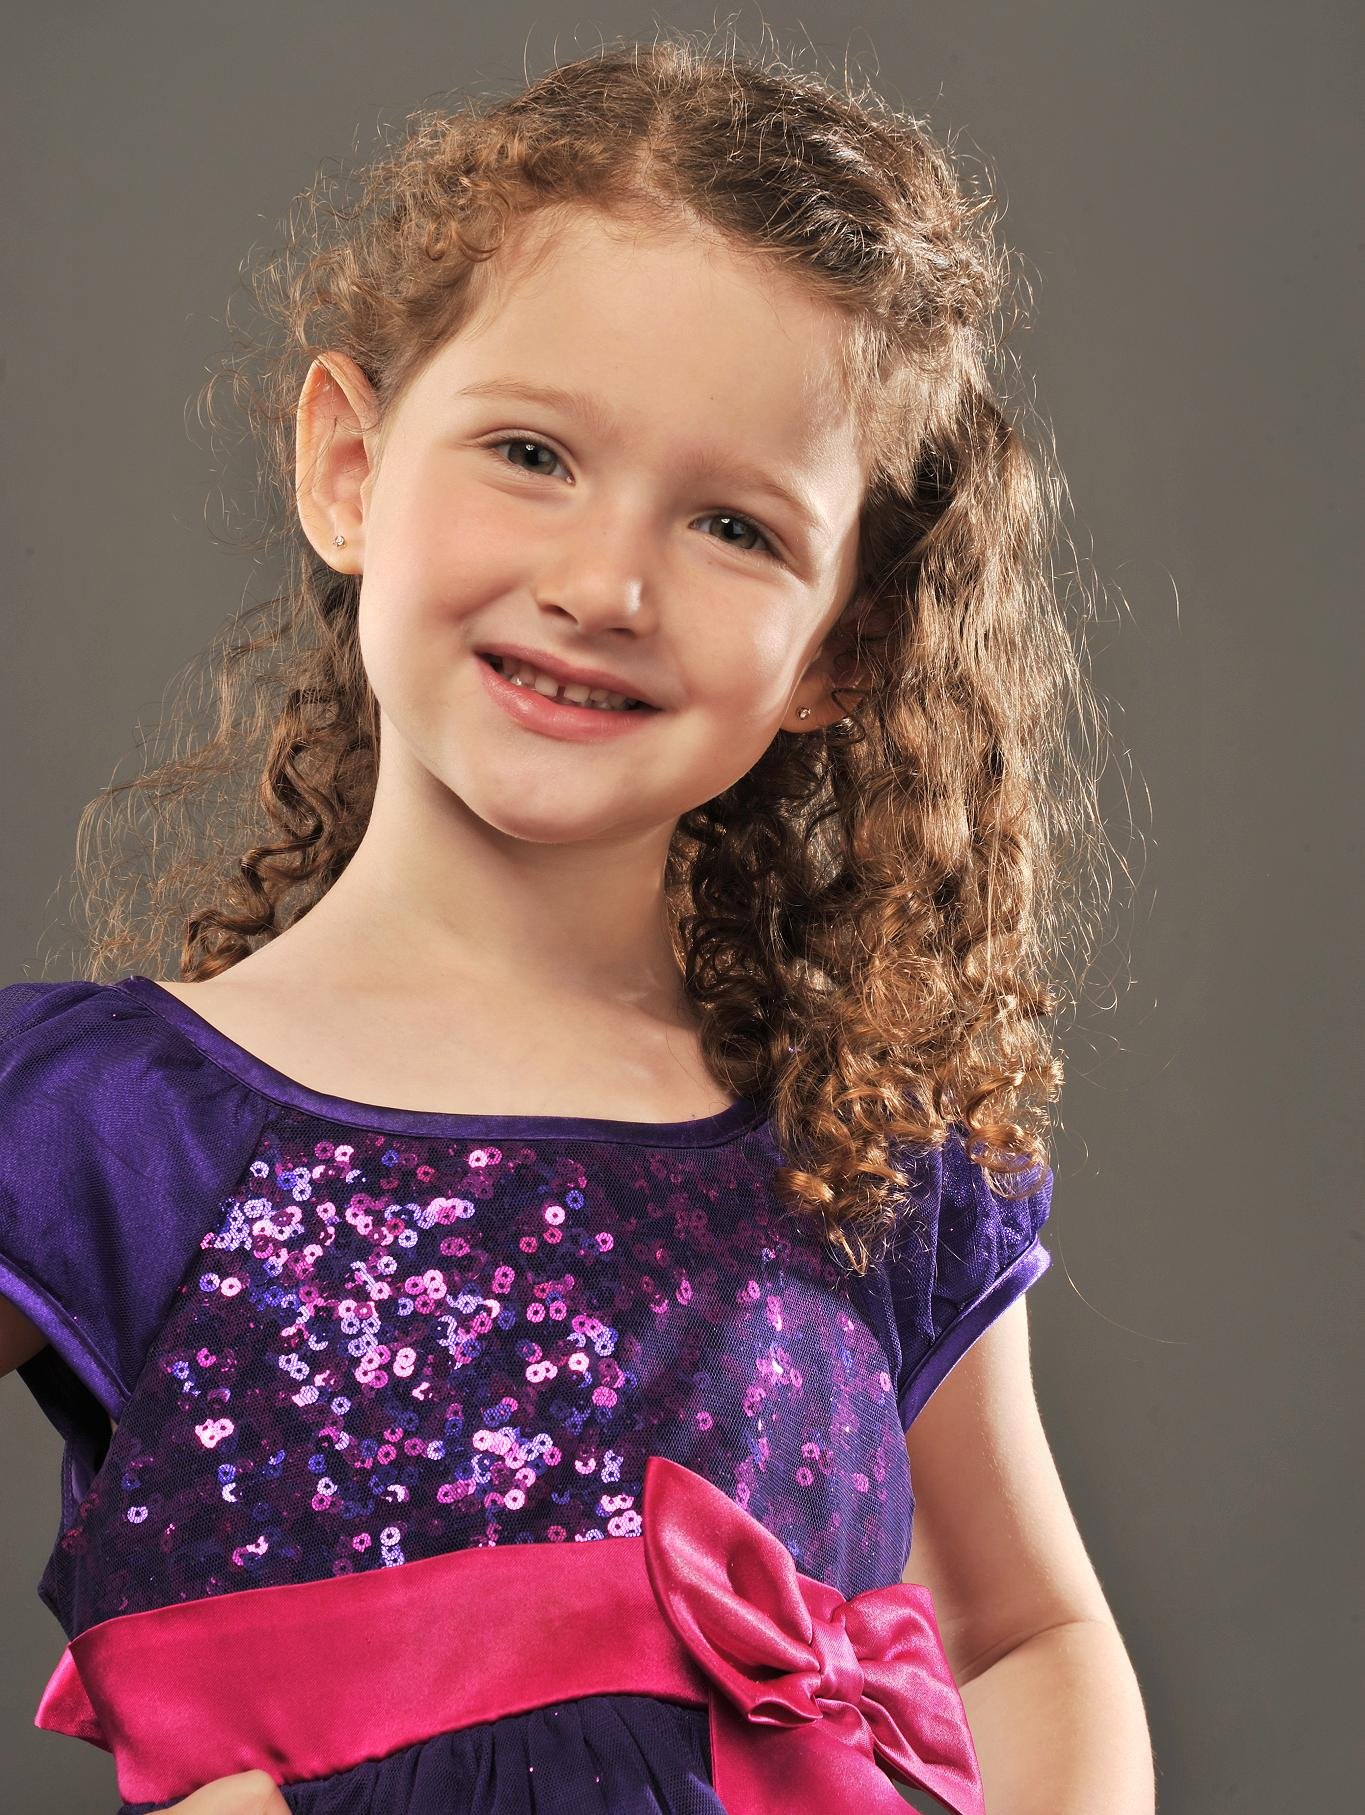 MAX Child Actor Shoots Major Commercial - MAX Agency